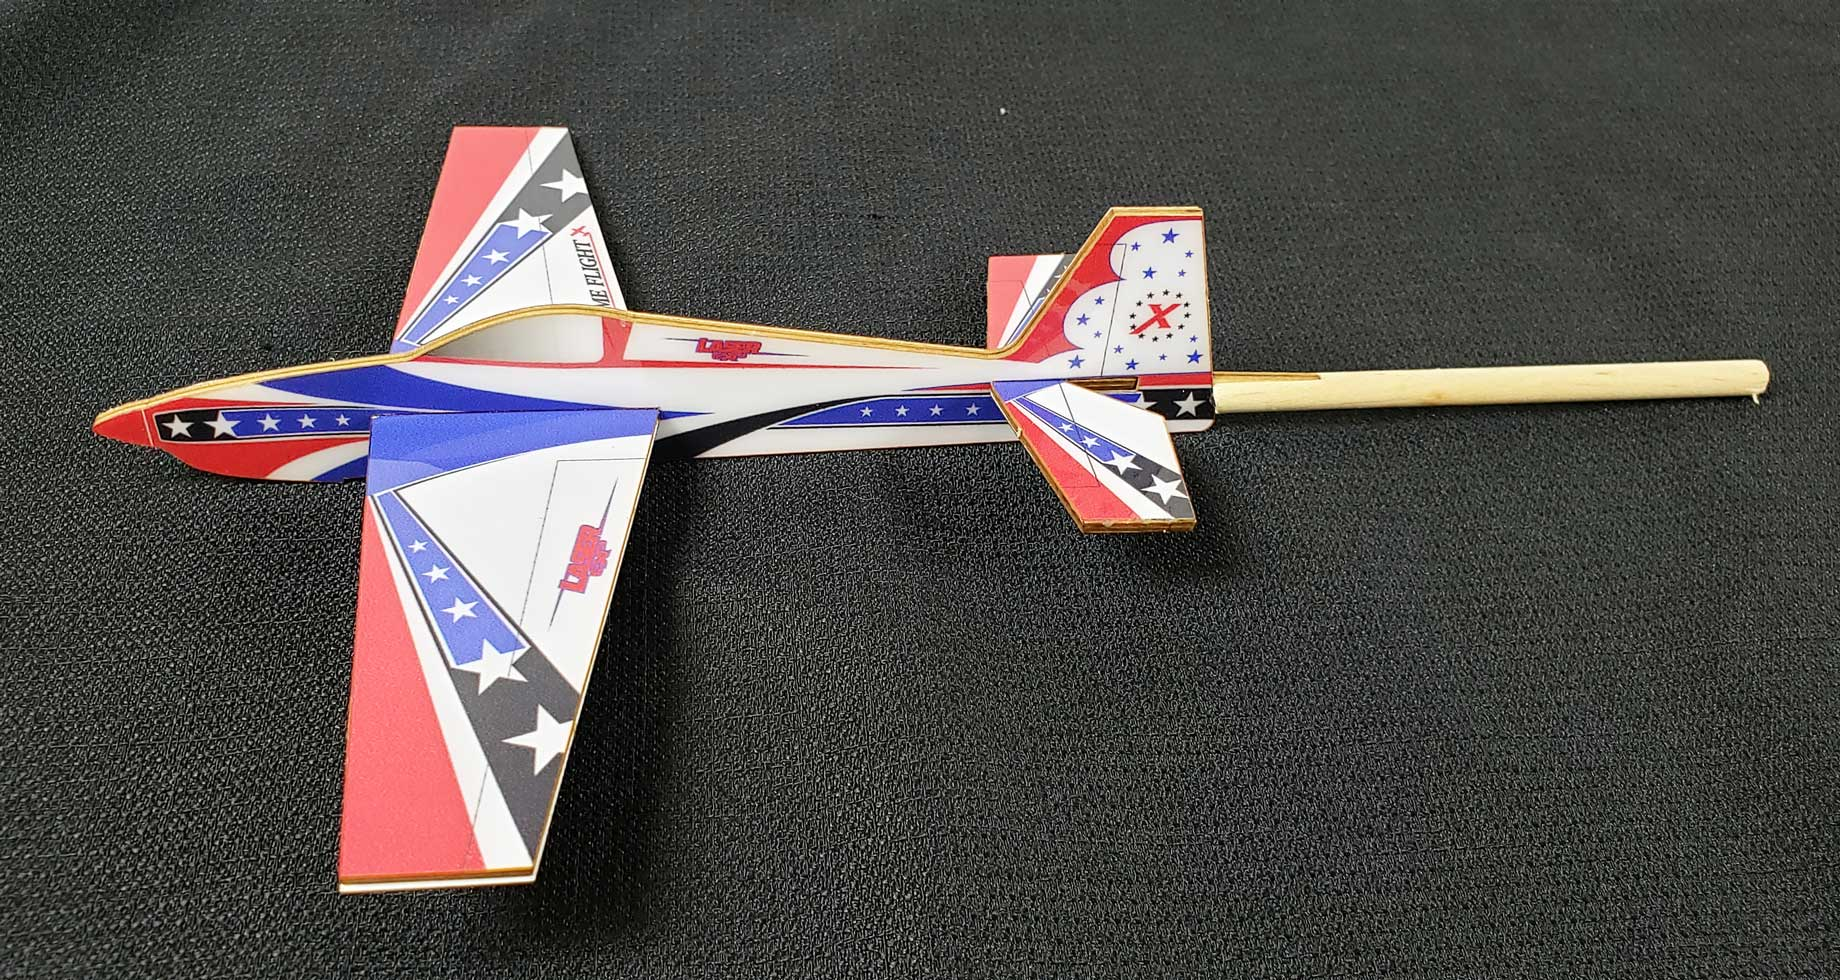 Extreme Flight Stick Plane - Laser Red/White/Blue Scheme